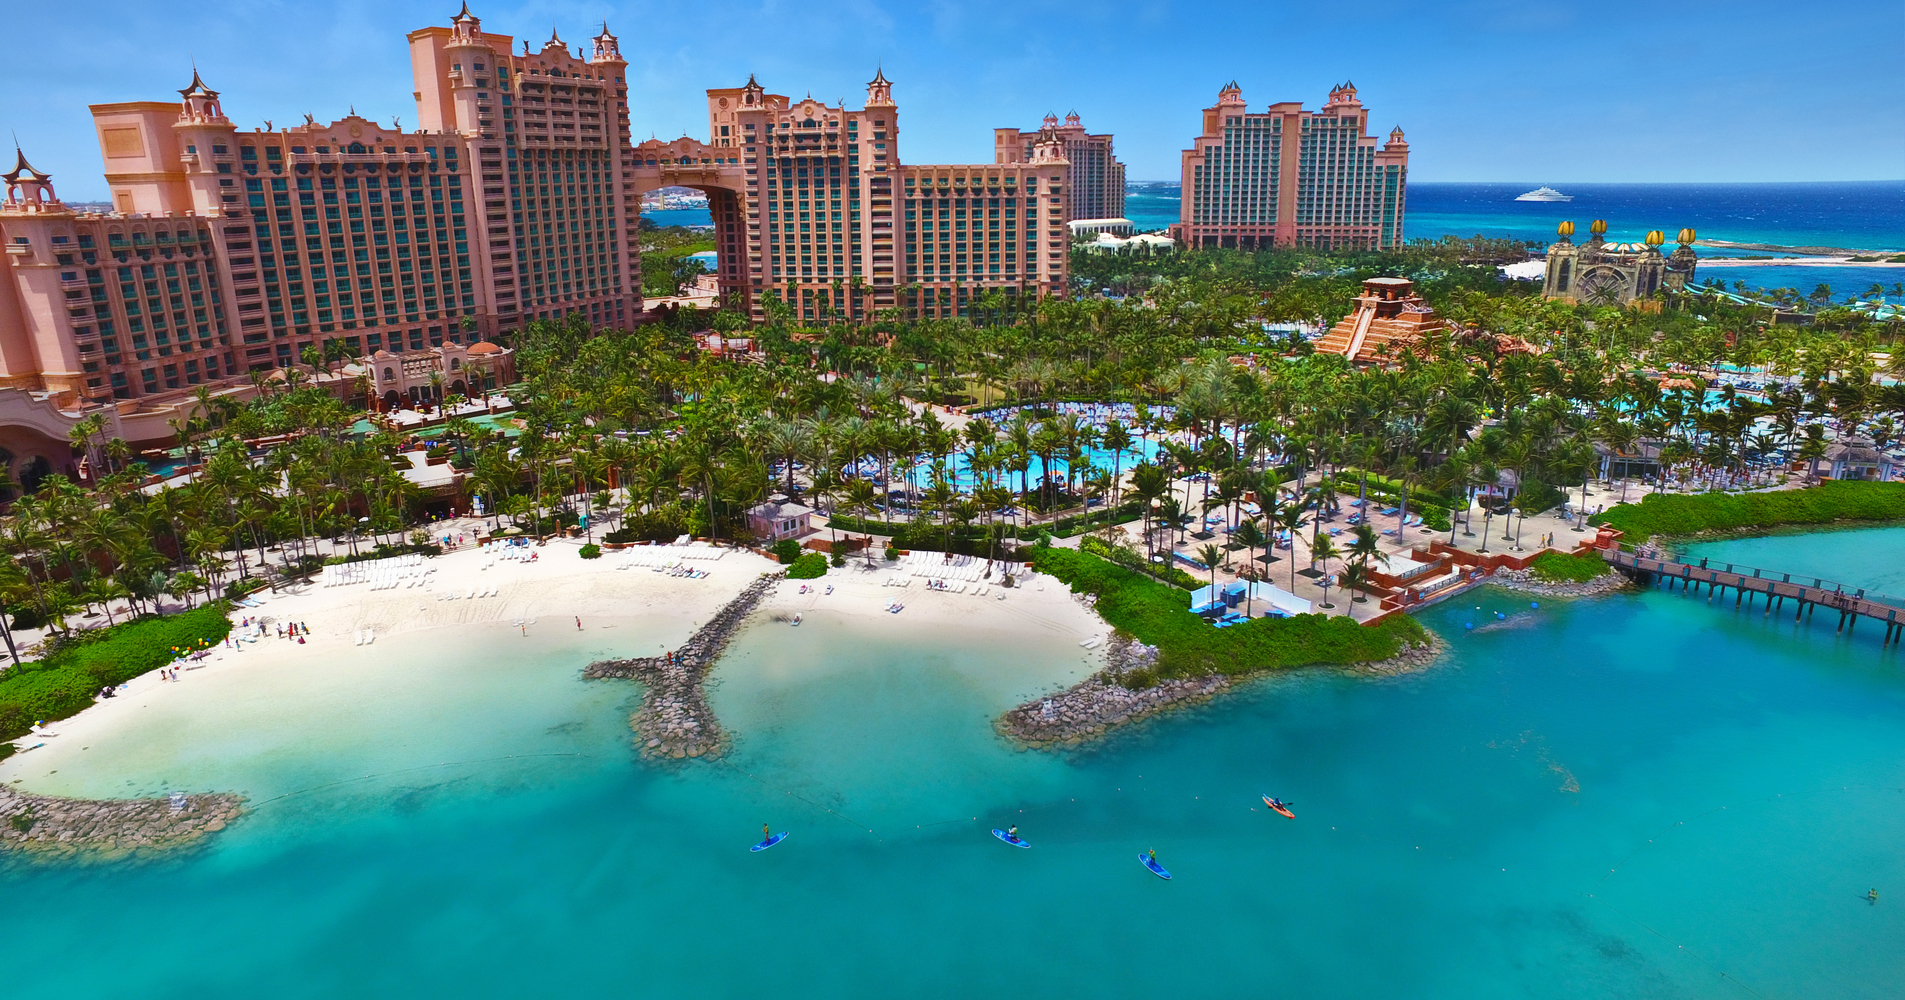 The Atlantis - Paradise Island